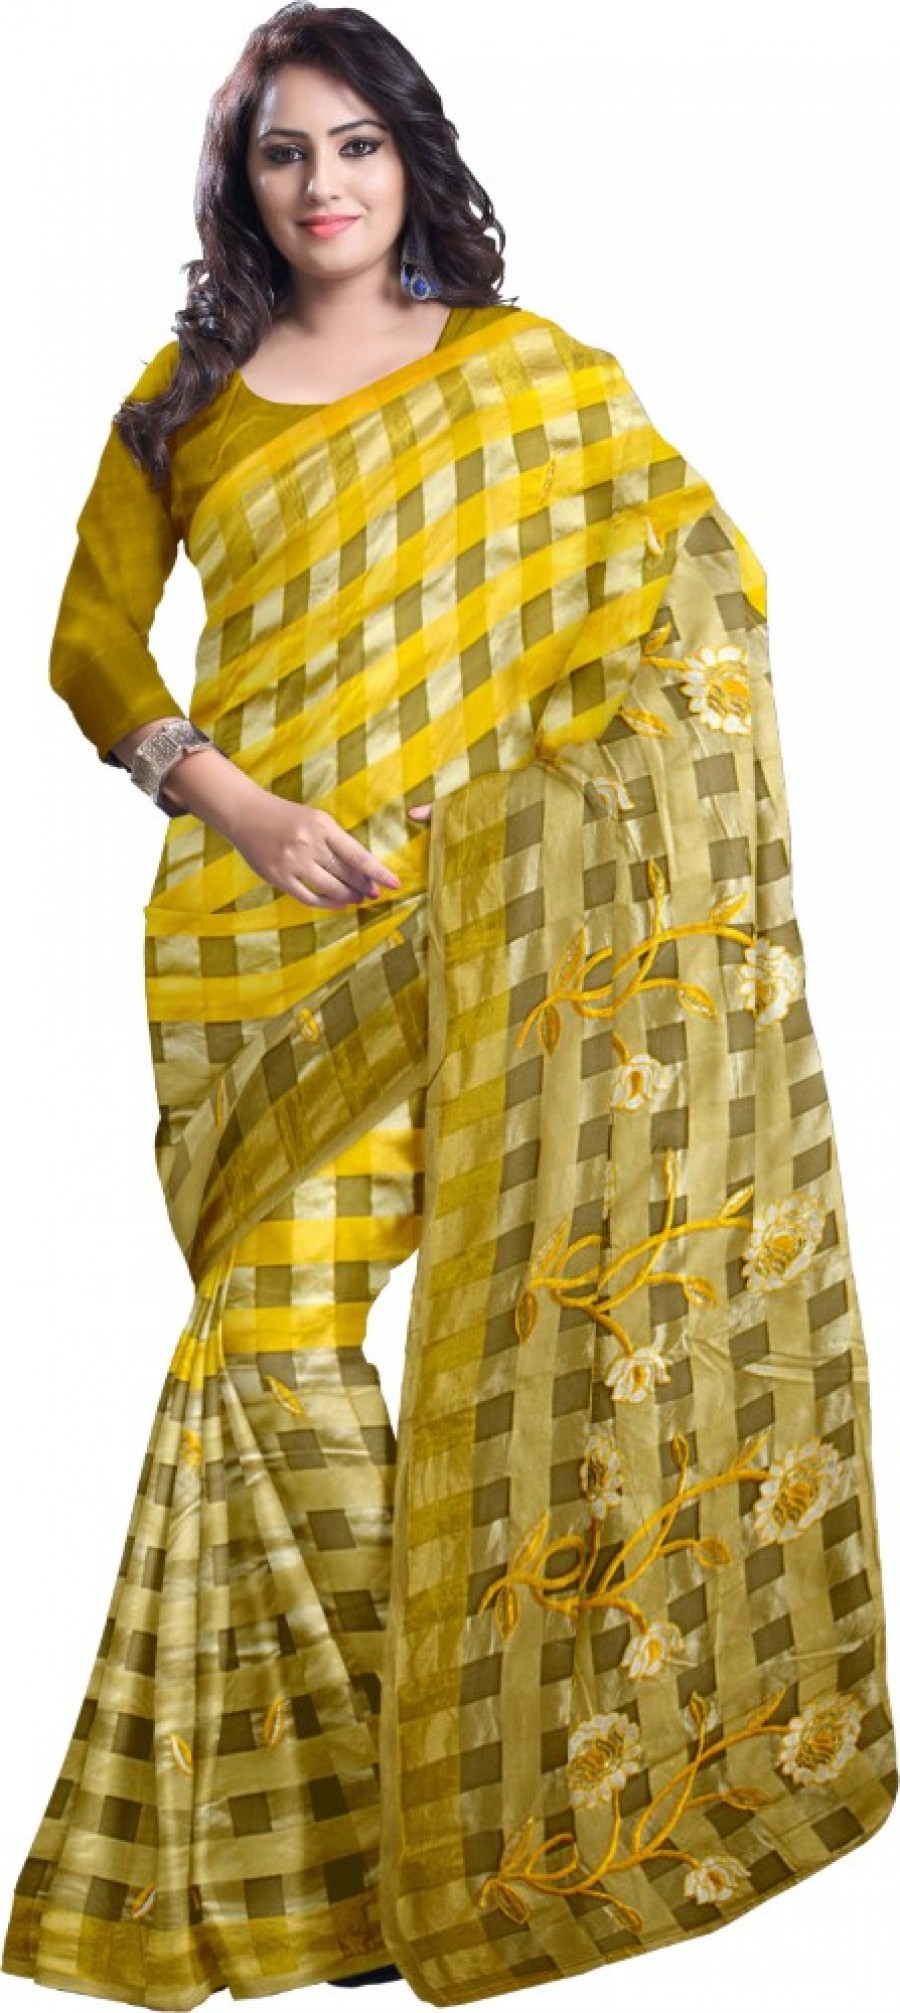 Buy Komal Sarees Self Design, Woven Chanderi Chanderi, Synthetic Sari Online